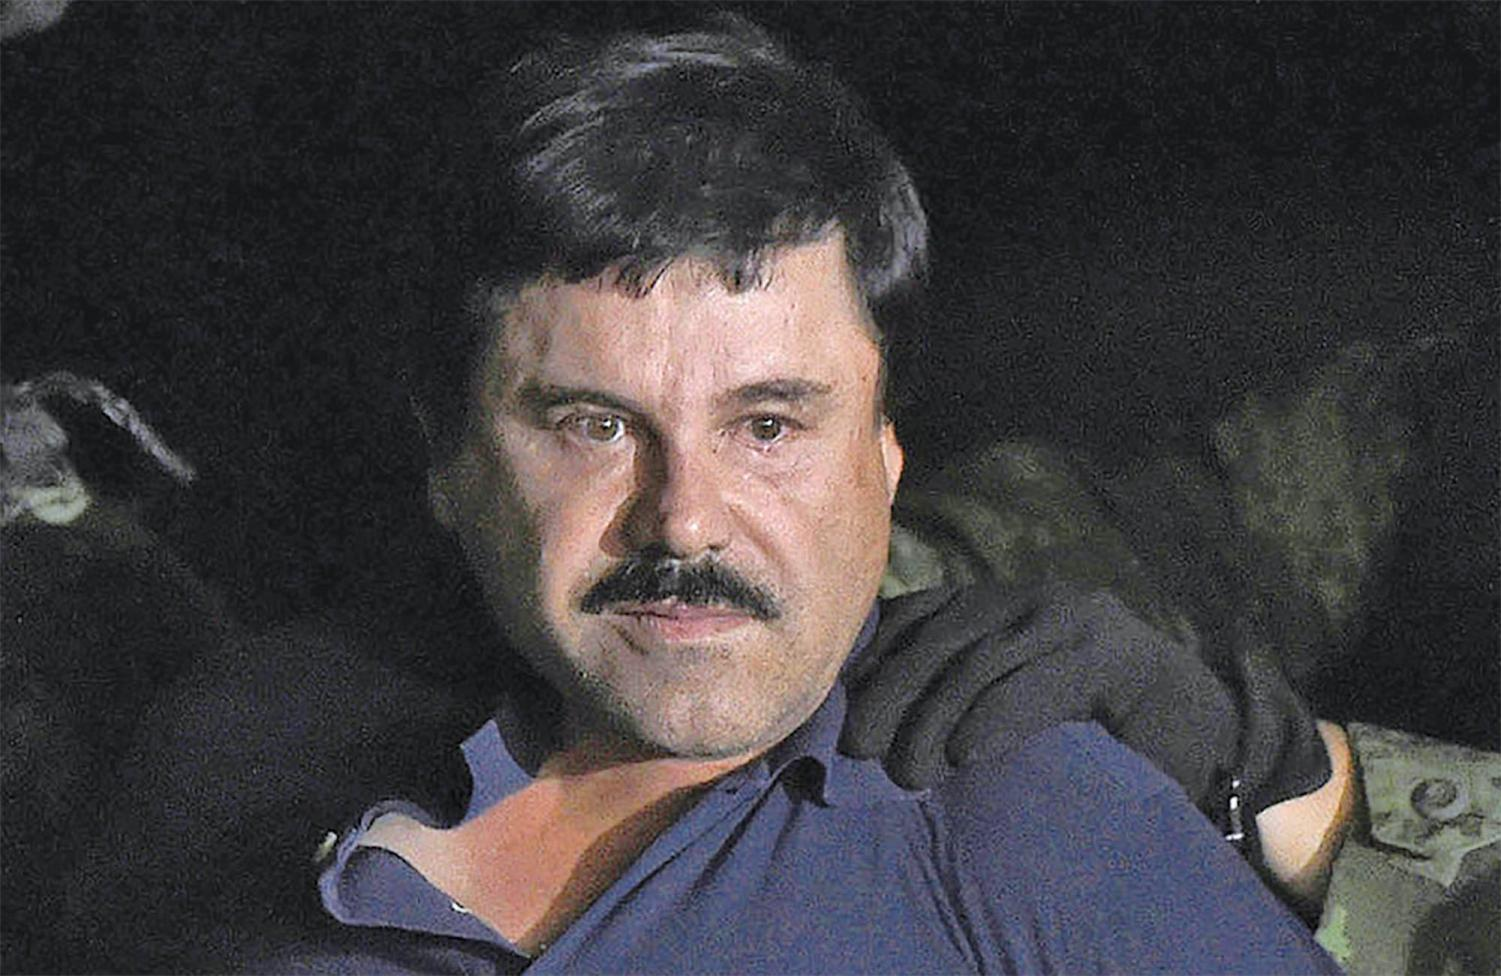 El Chapo could face life in prison if convicted.